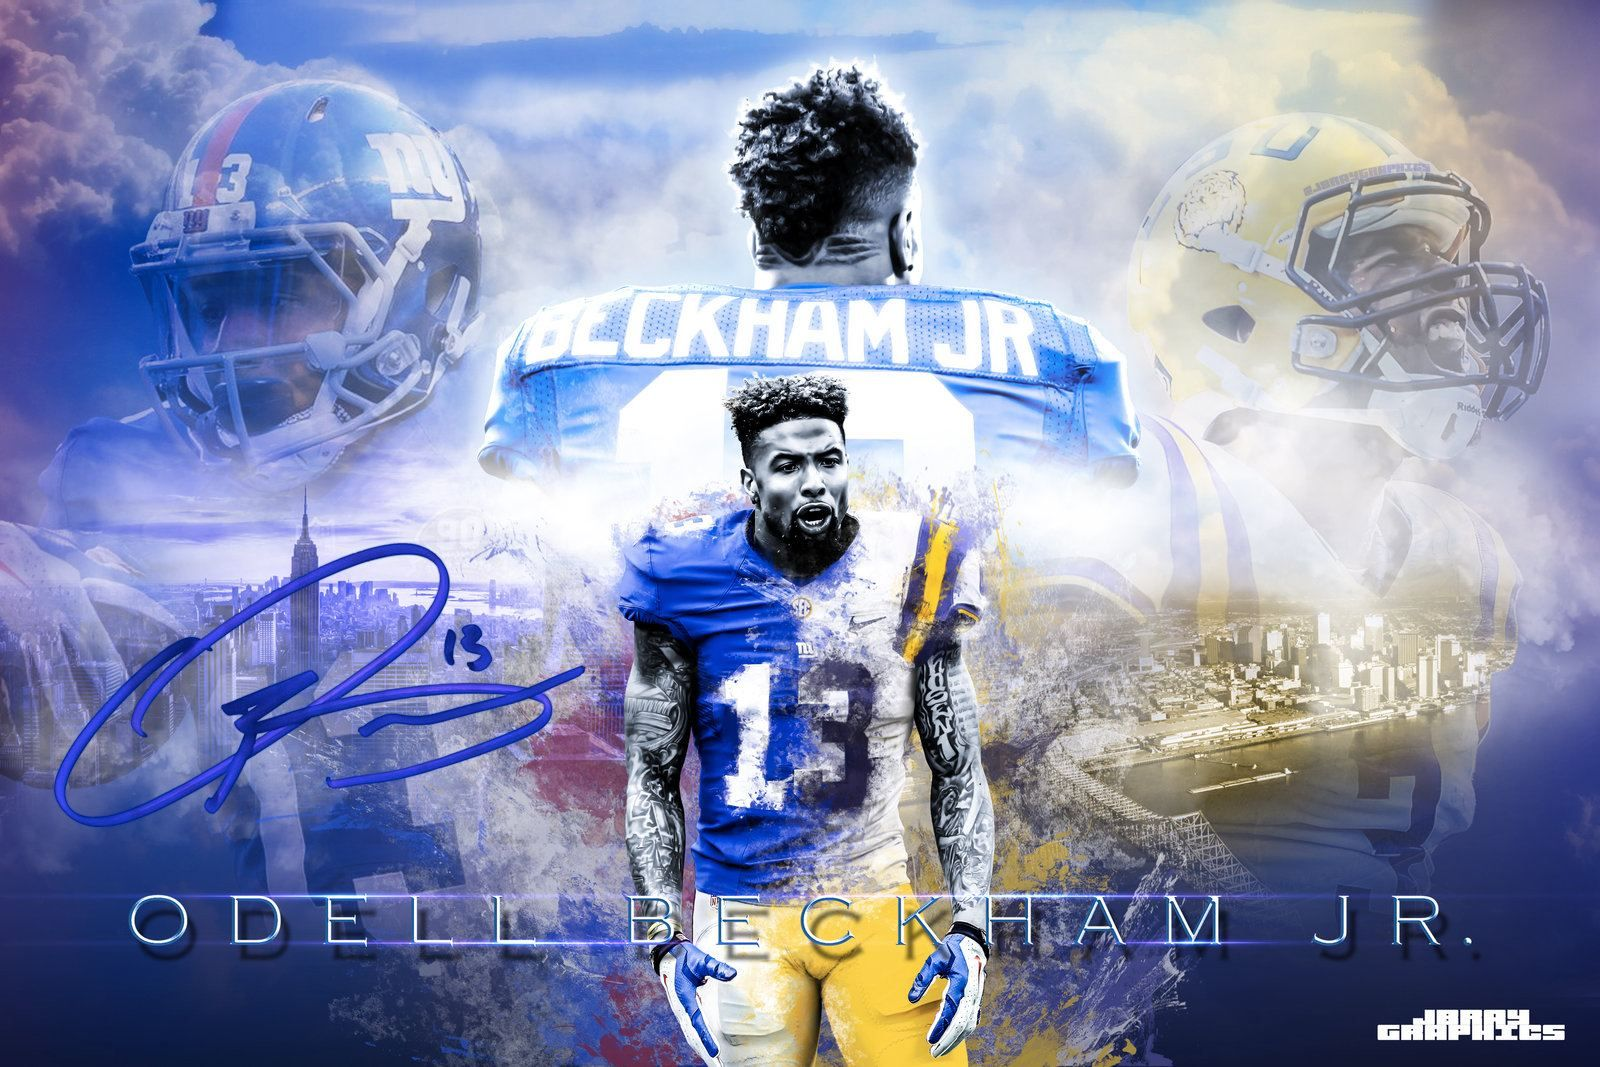 This Is My Back Round On My Computer Odell Beckham Jr Wallpapers Beckham Jr Odell Beckham Jr